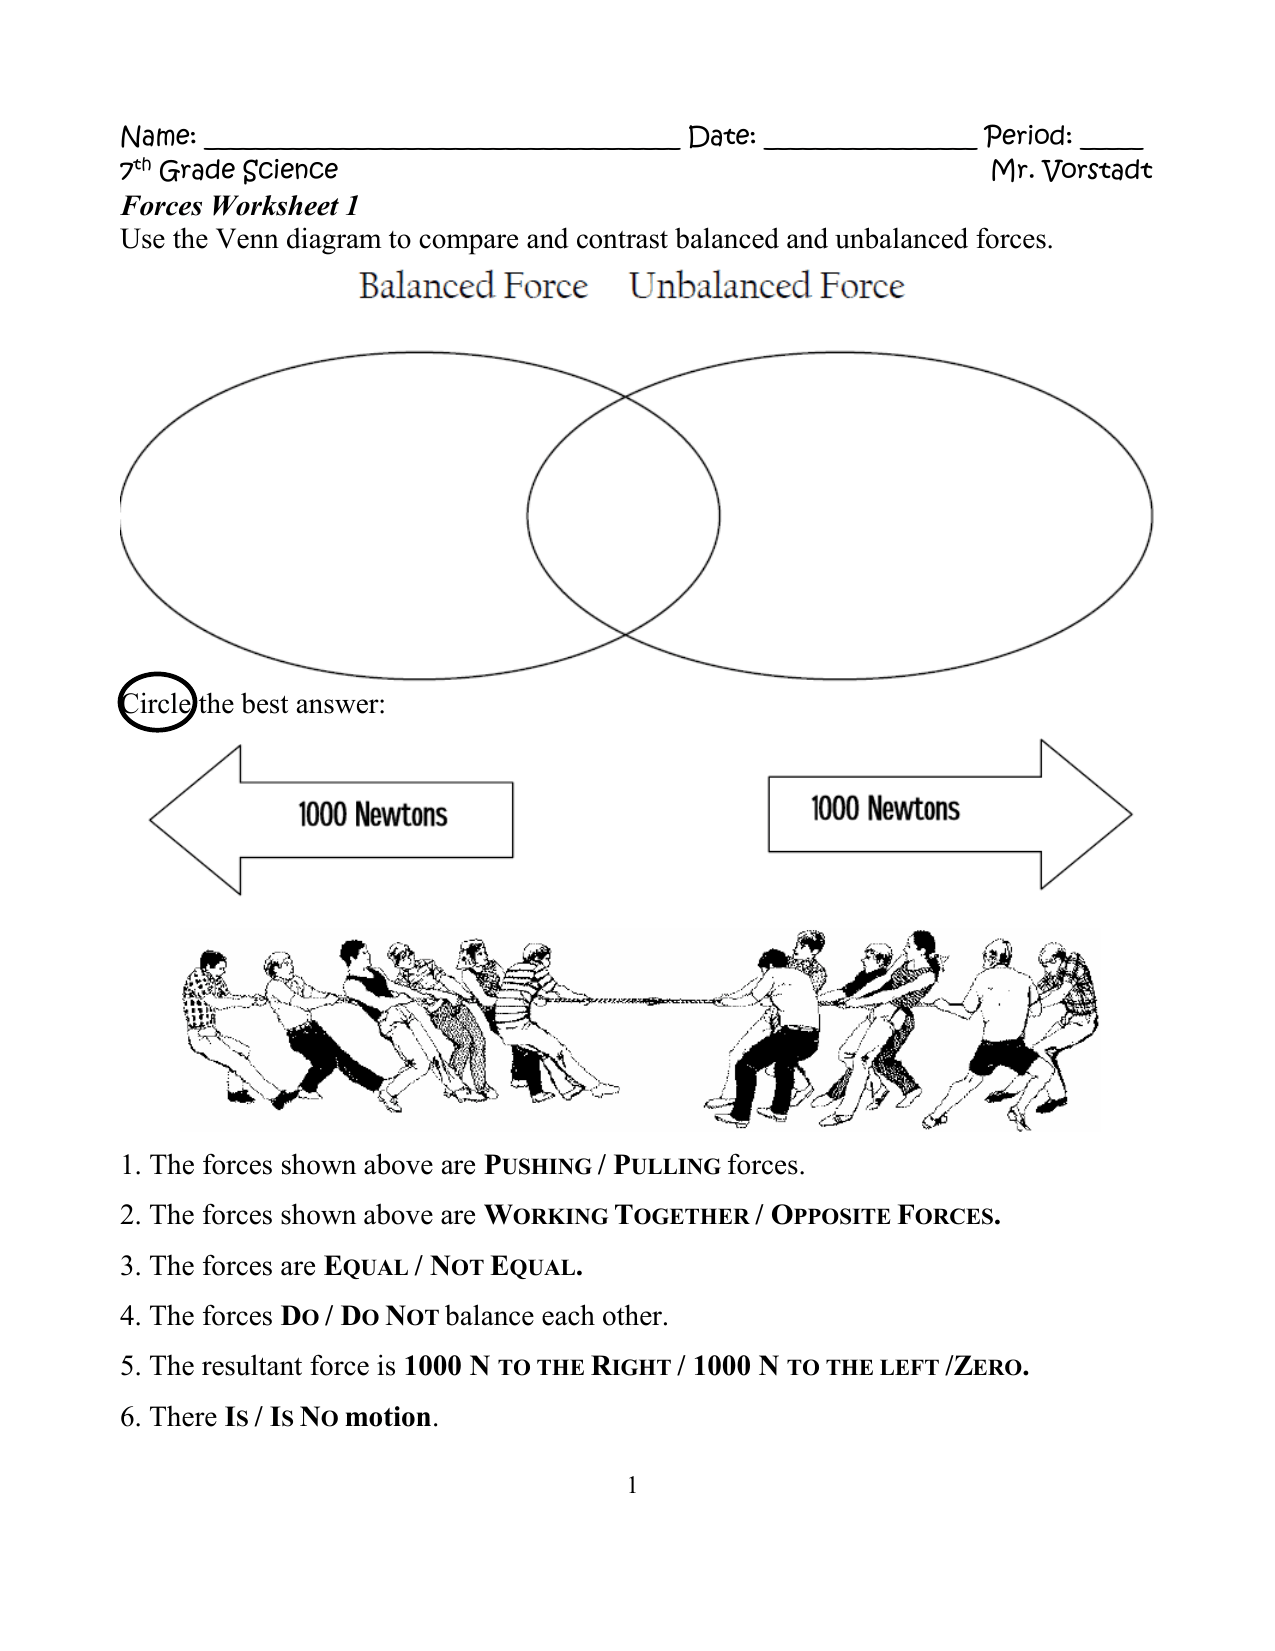 Balanced Vs Unbalanced Forces Worksheet